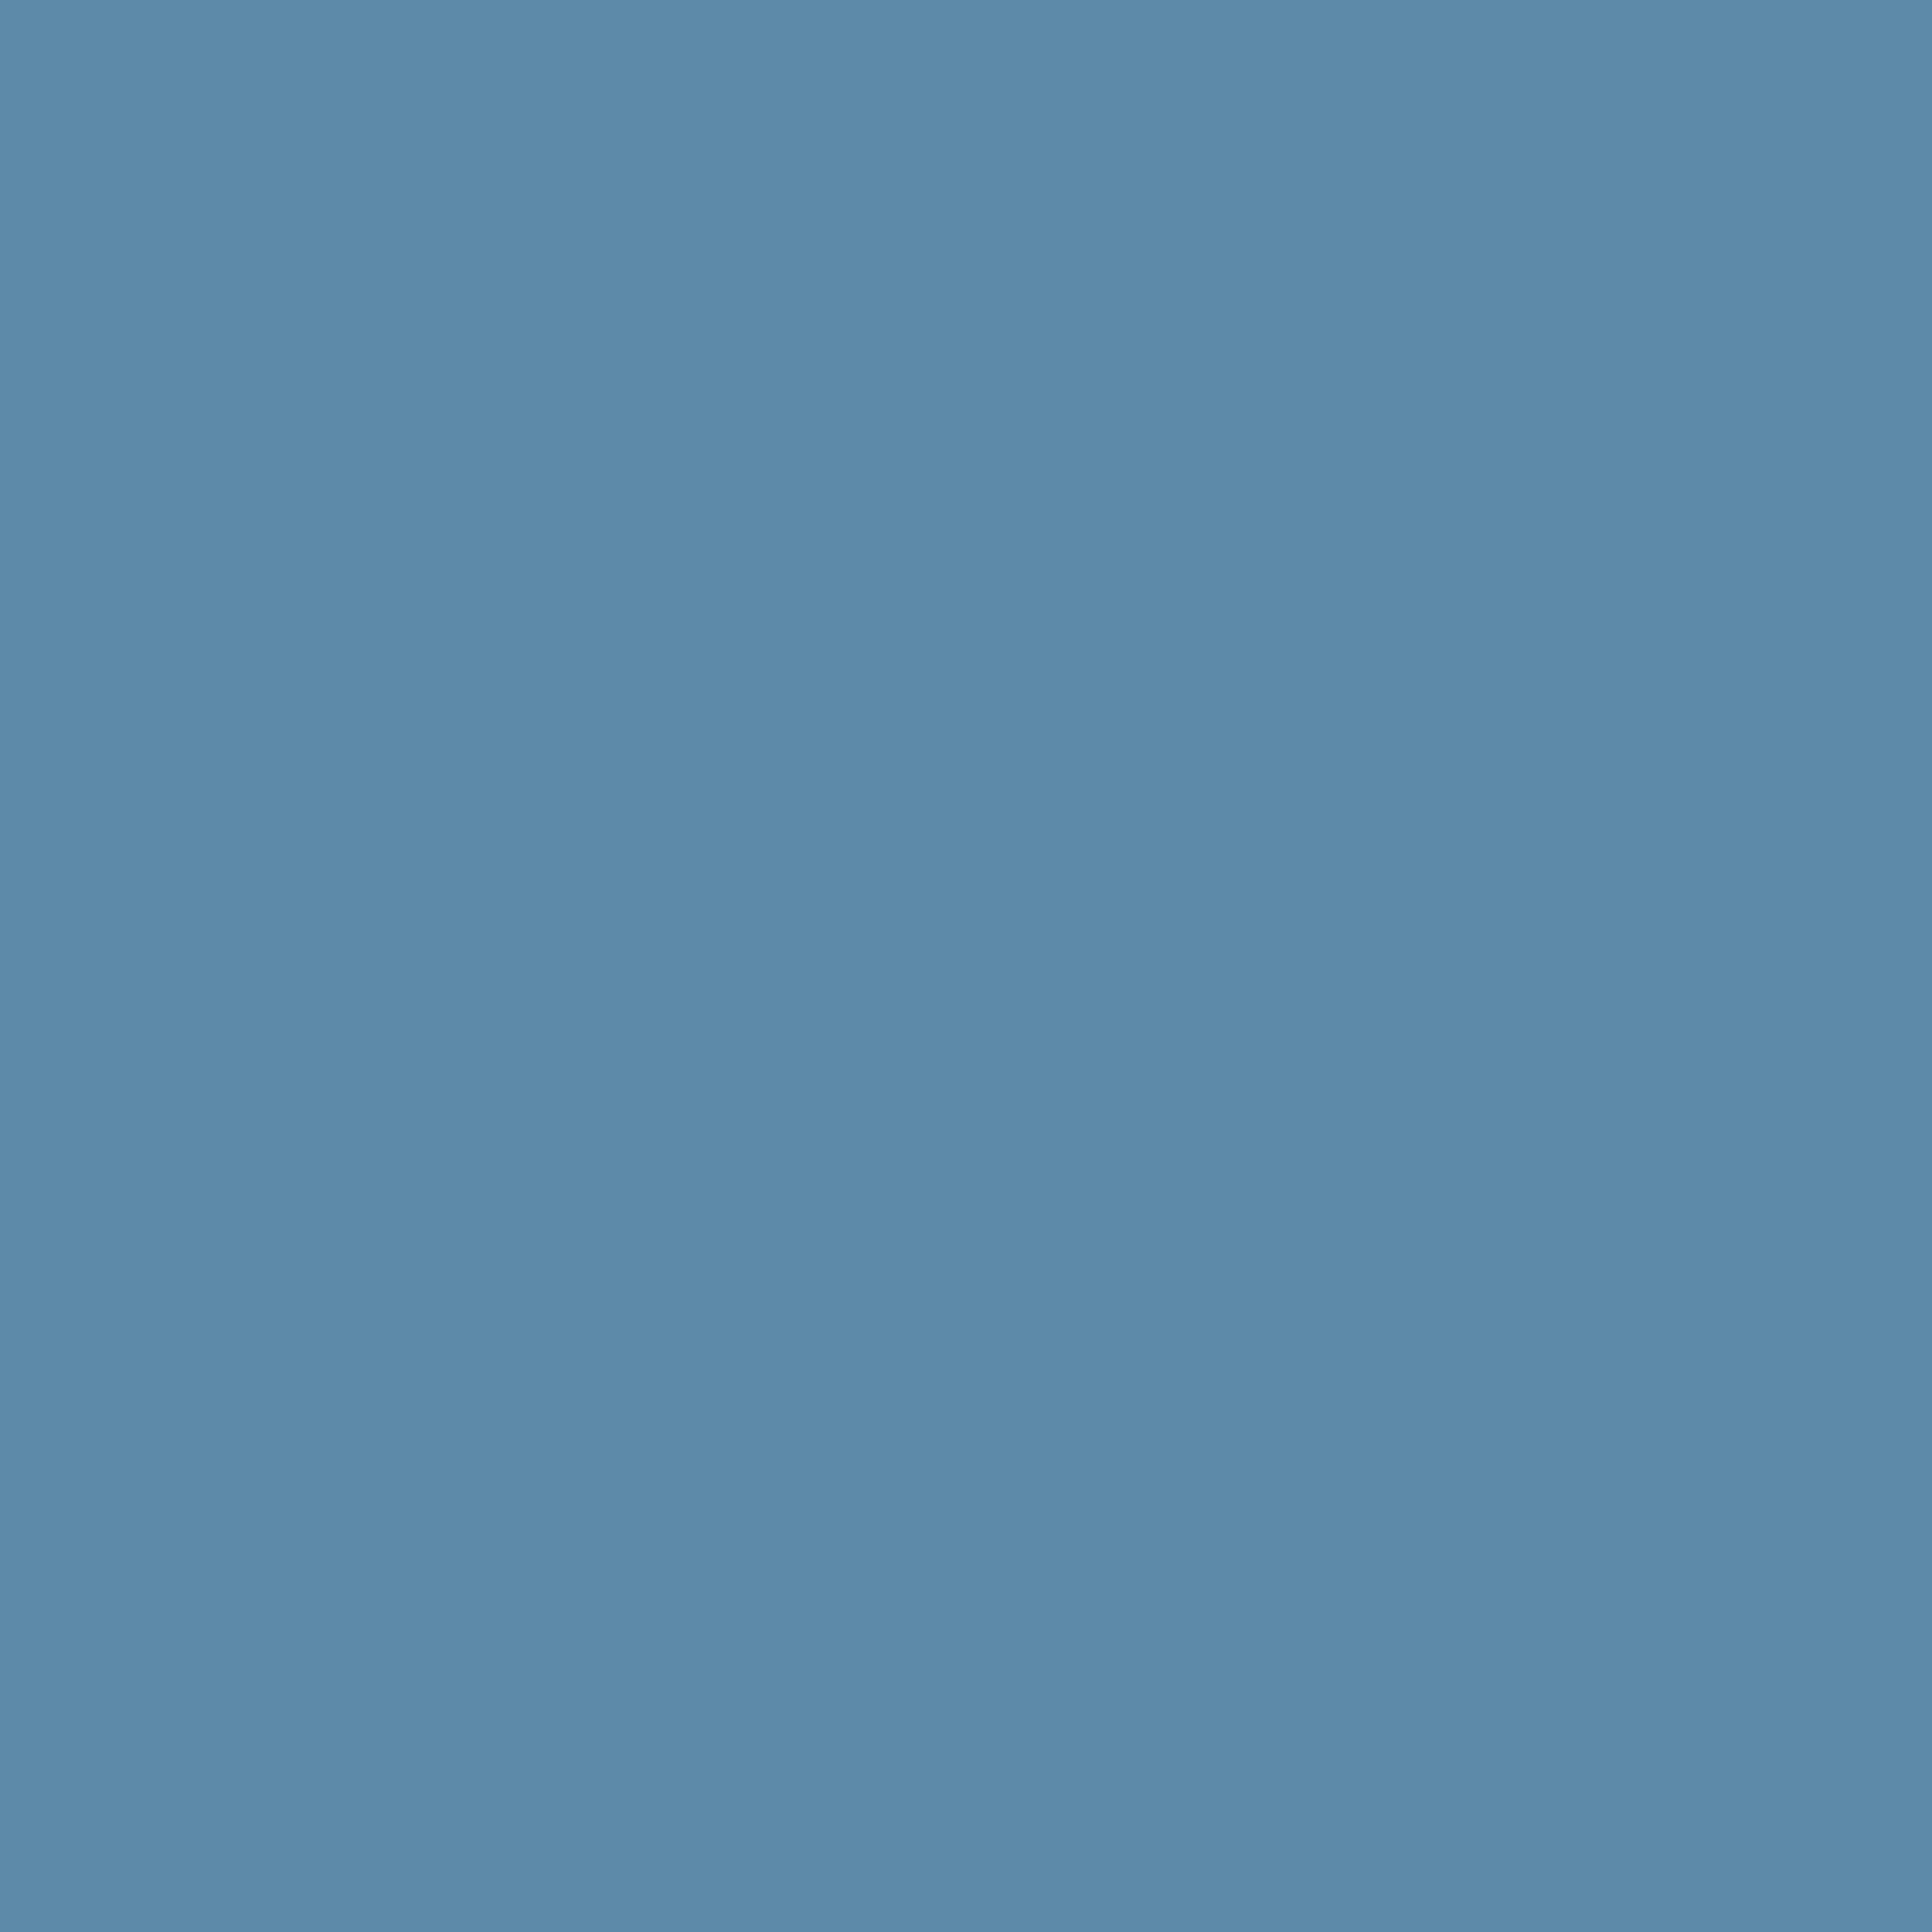 2732x2732 Air Force Blue Solid Color Background